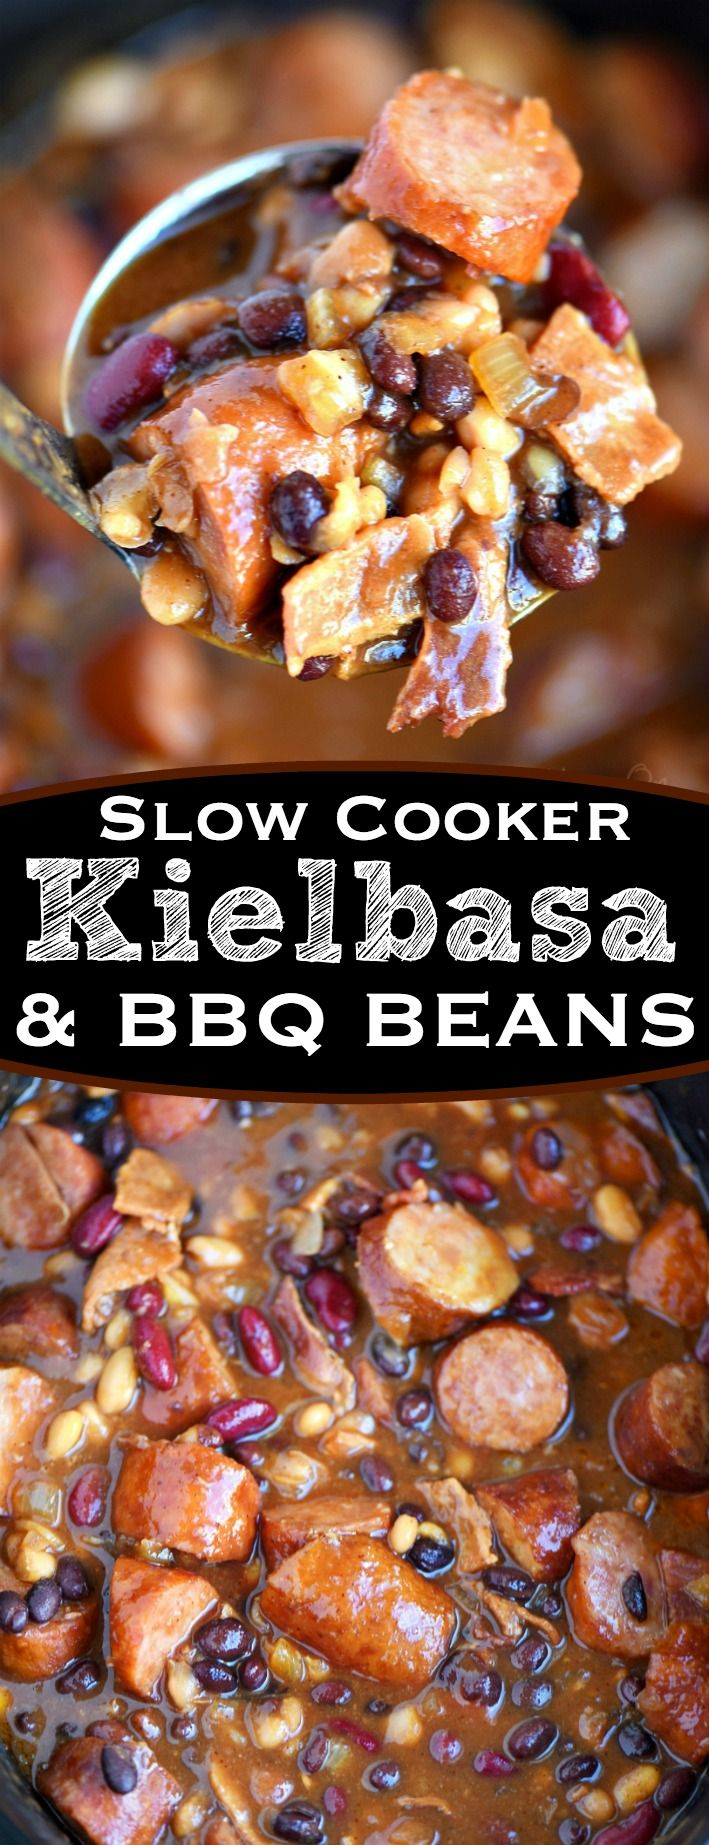 Slow Cooker Kielbasa and Barbecue Beans is the perfect chilly day recipe! Made with three different beans, molasses, bacon, and kielbasa - it's pure comfort food! // Mom On Timeout: